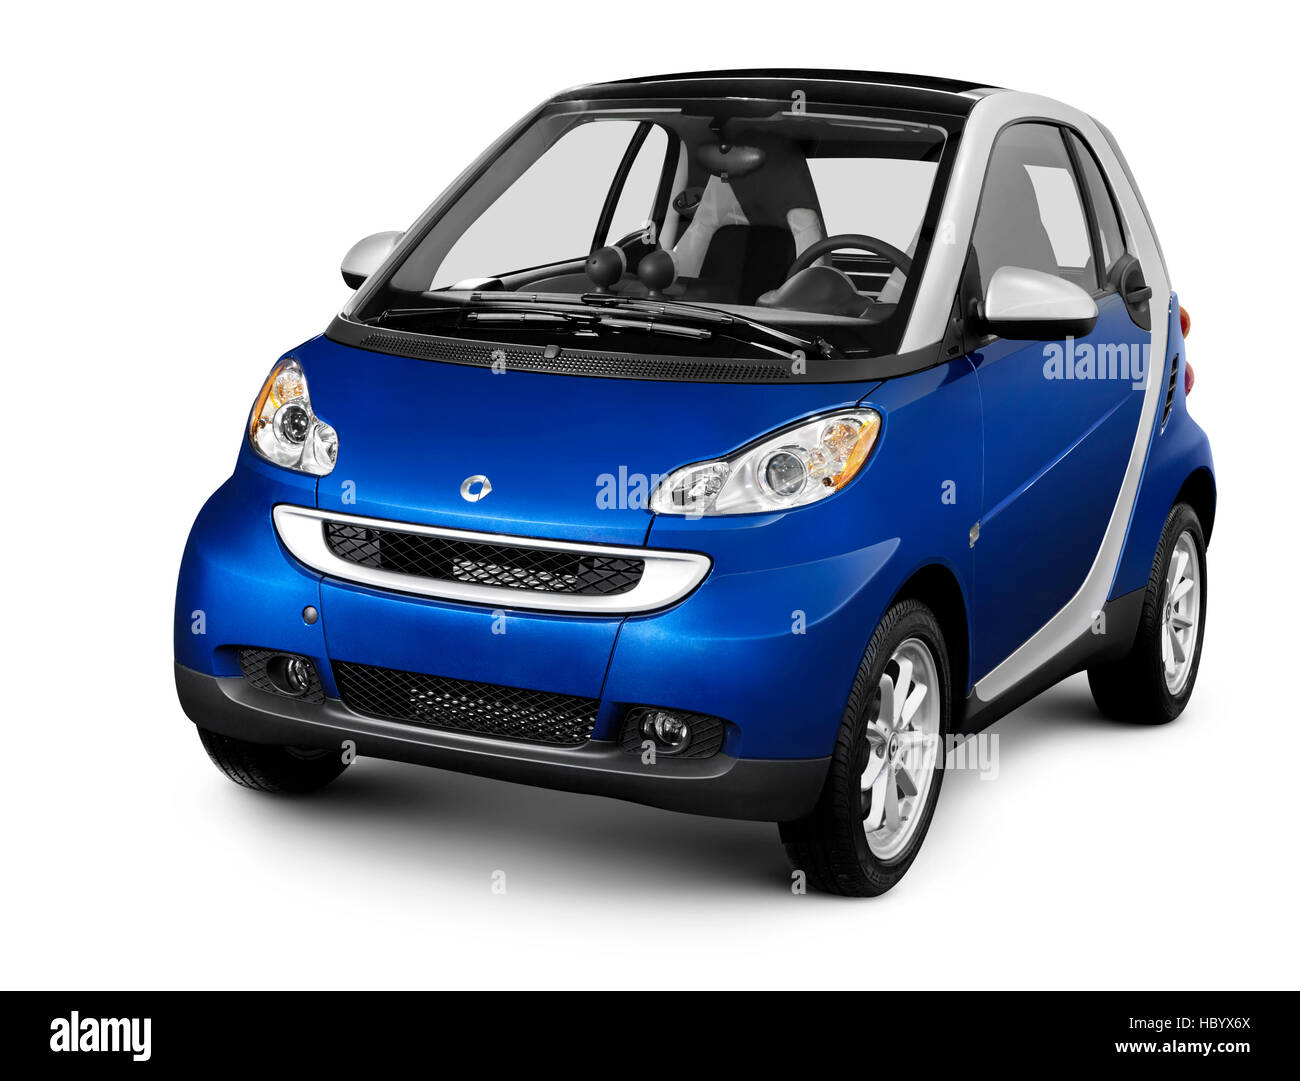 2008 Smart Fortwo, fuel efficient mini city car - Stock Image